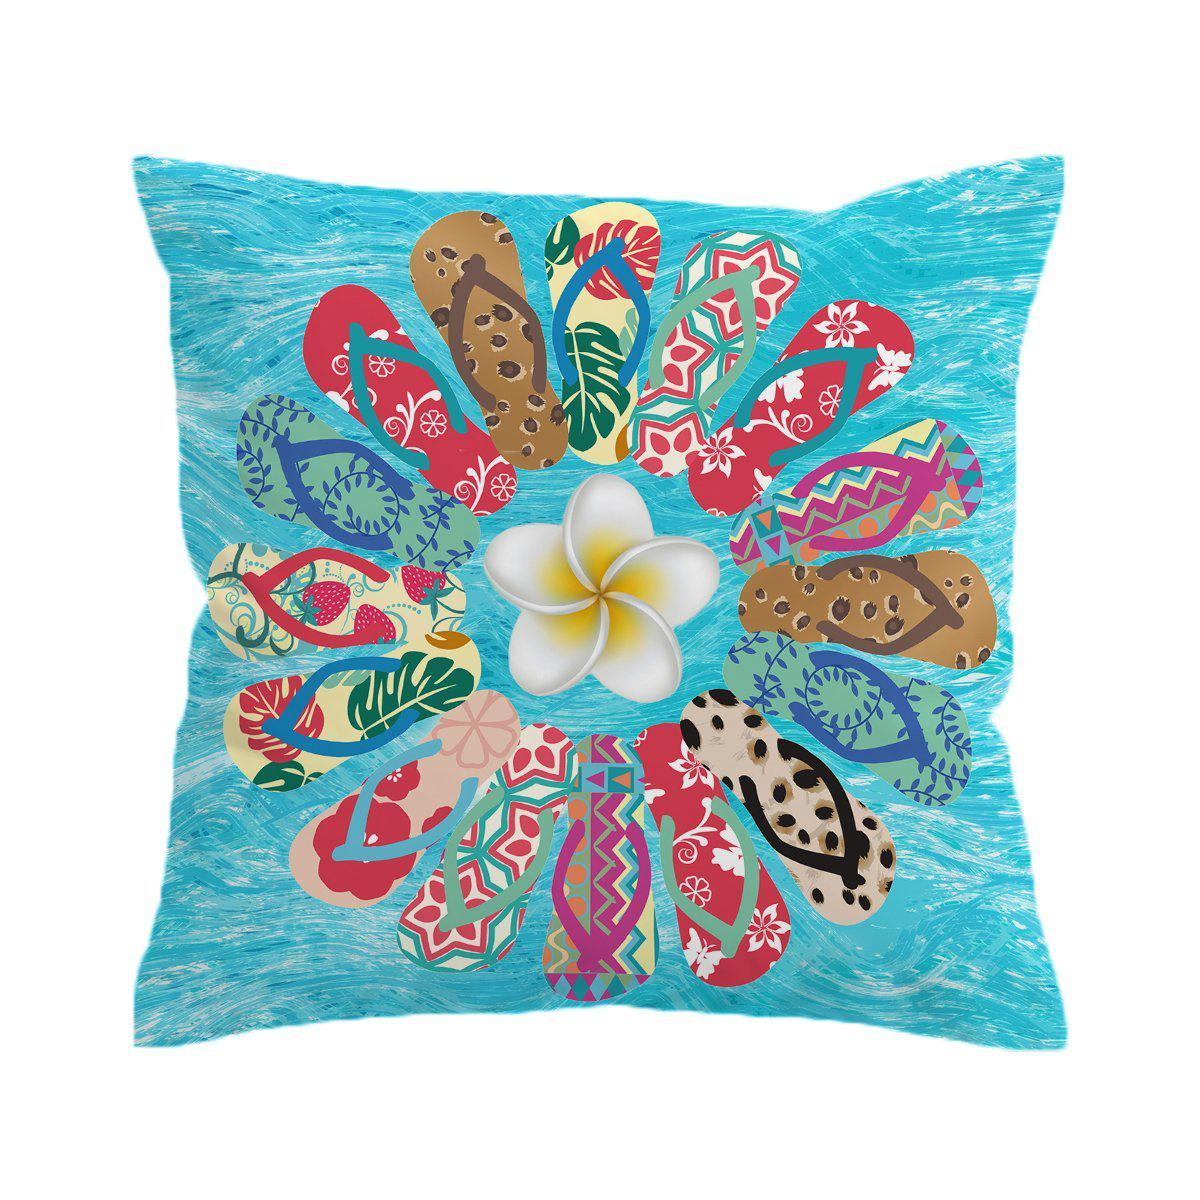 The Flip Flop Flower Pillow Cover-Coastal Passion